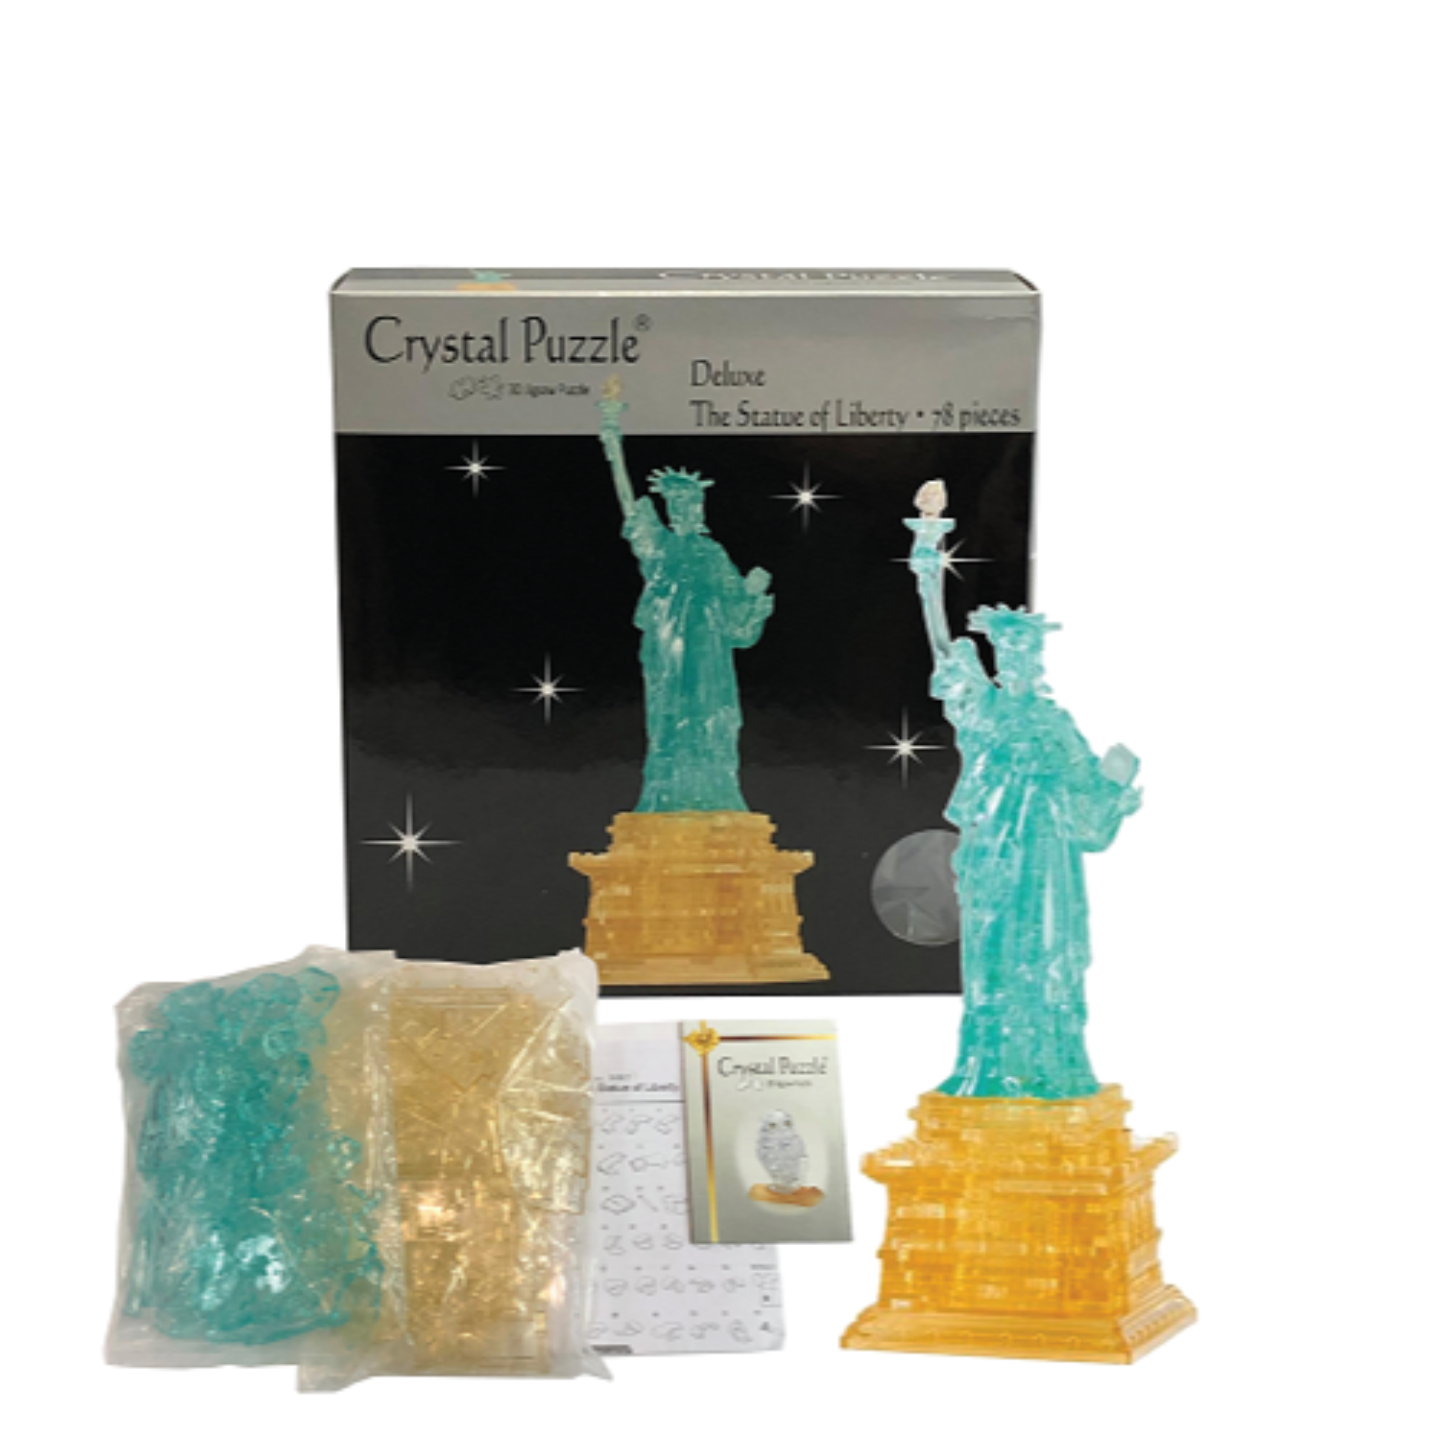 3D Crystal Puzzle The Statue Of Liberty